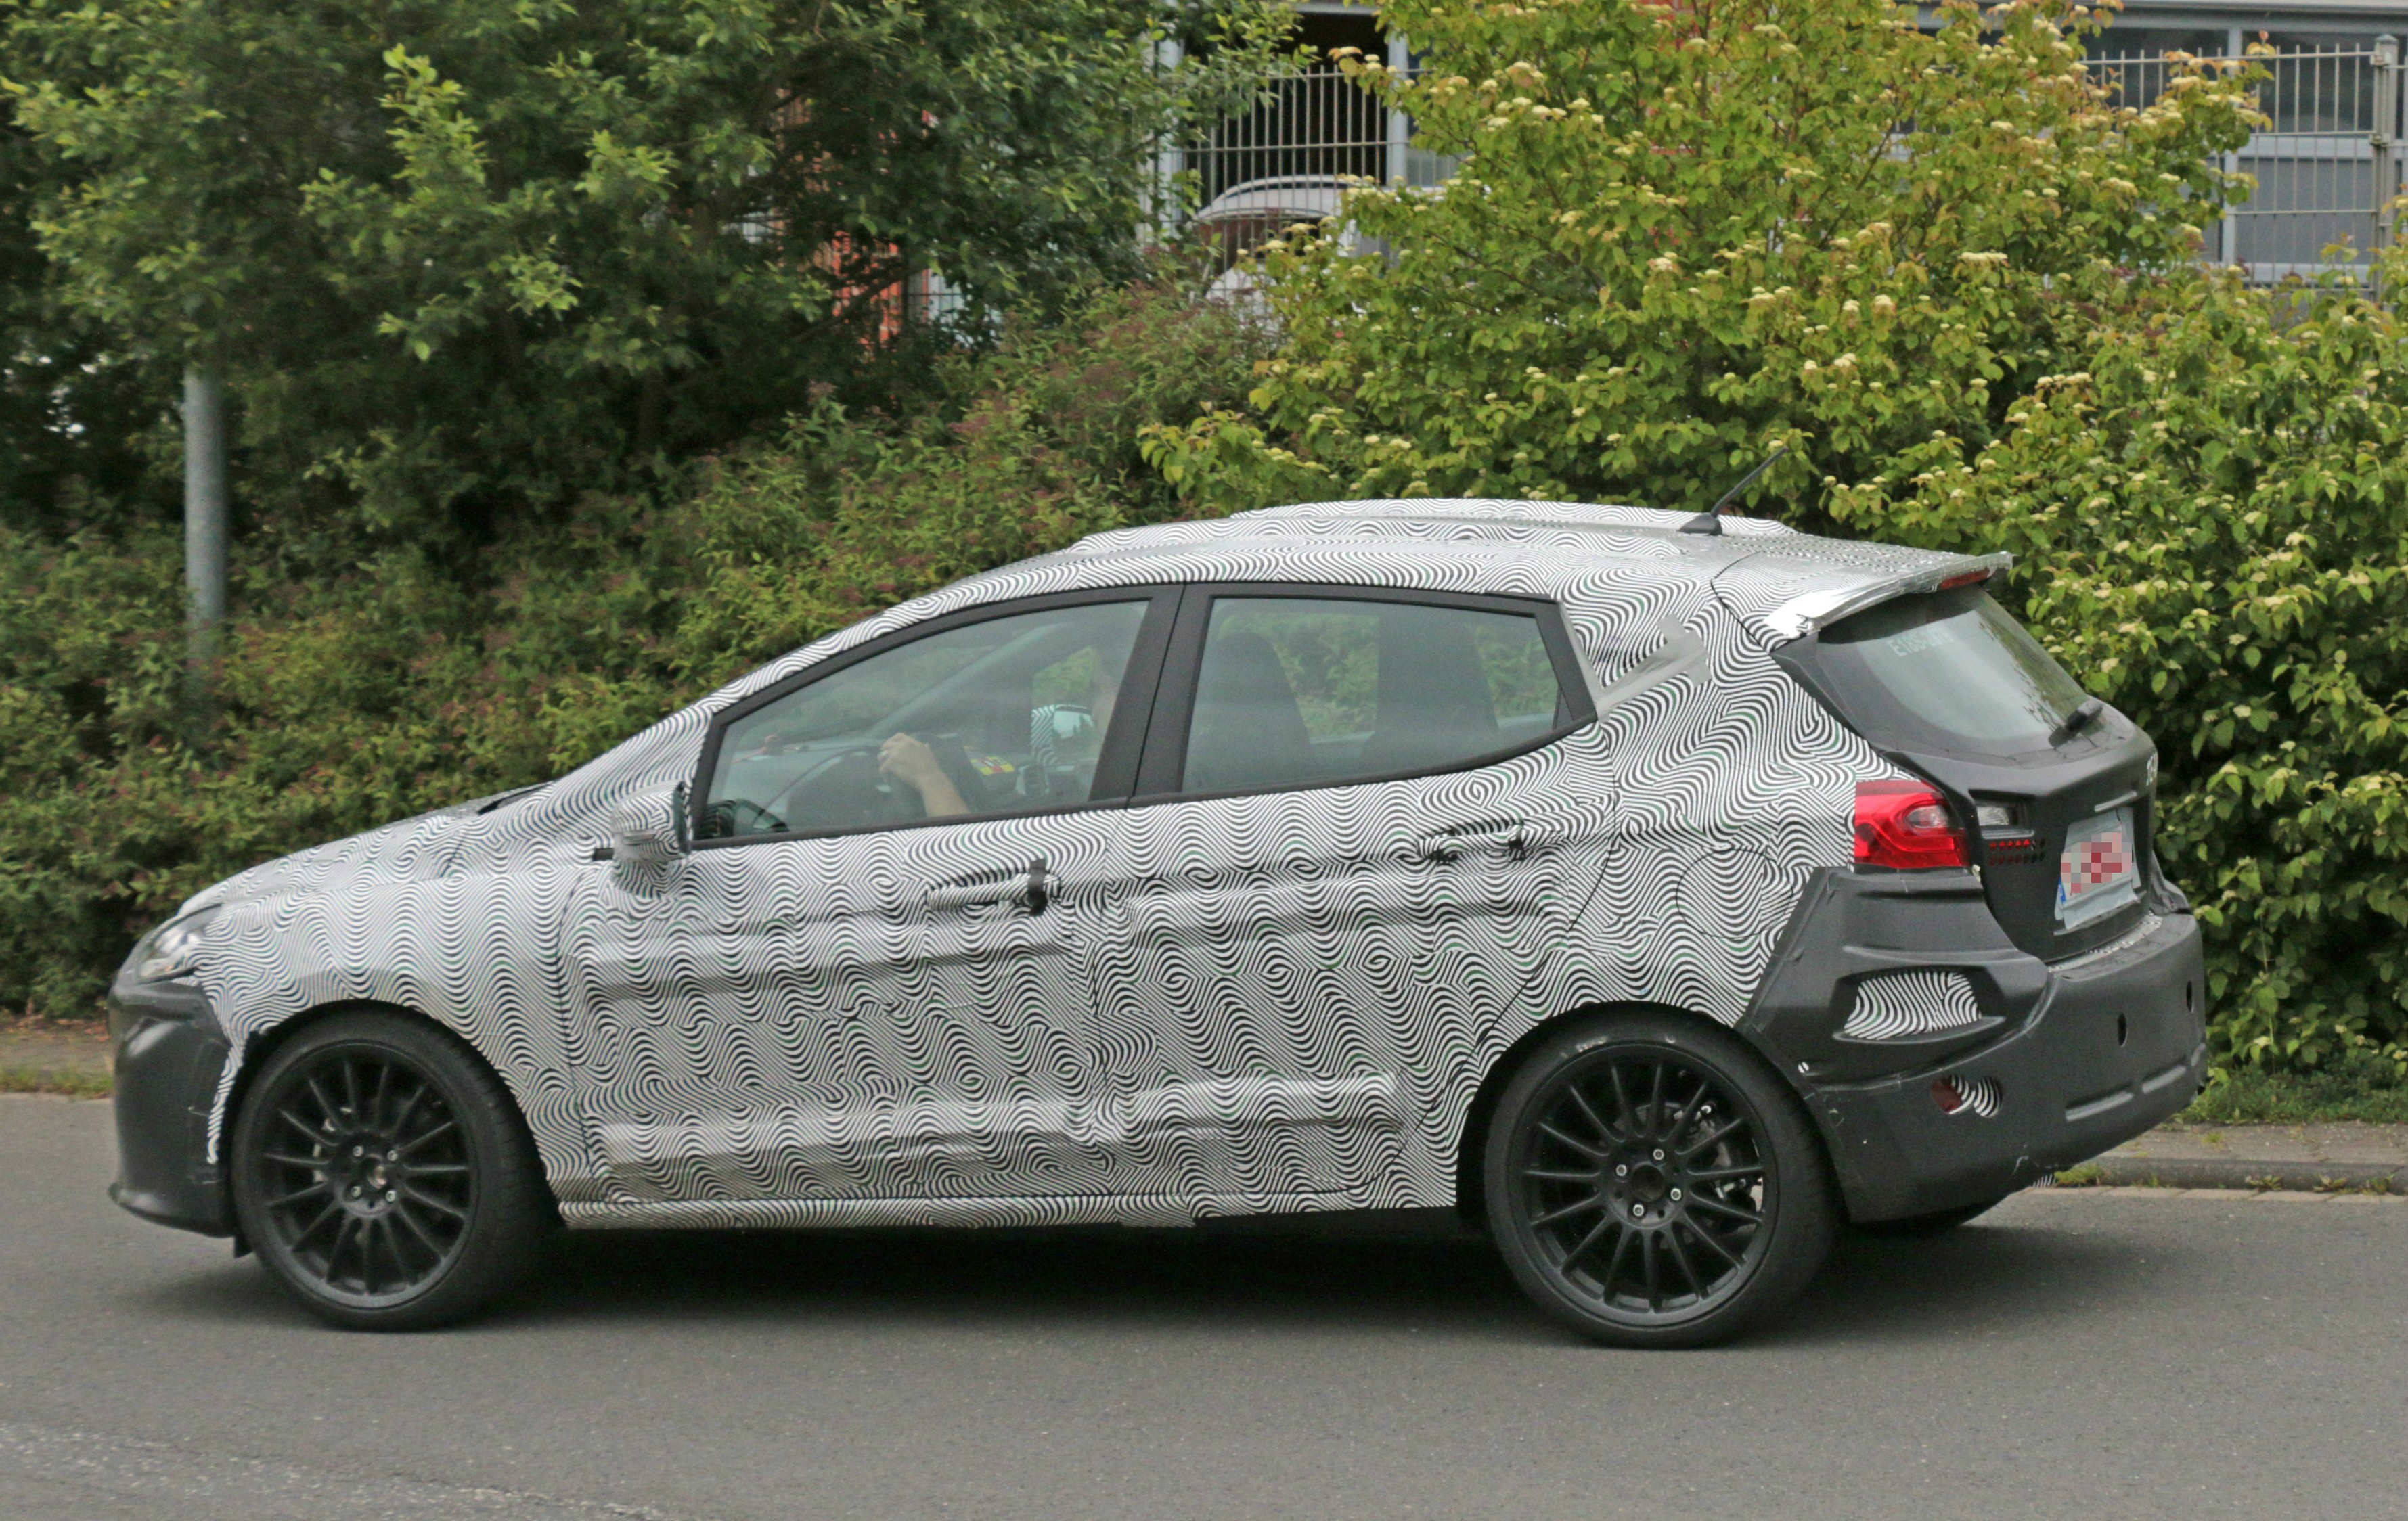 2018 Ford Fiesta S photo - 1